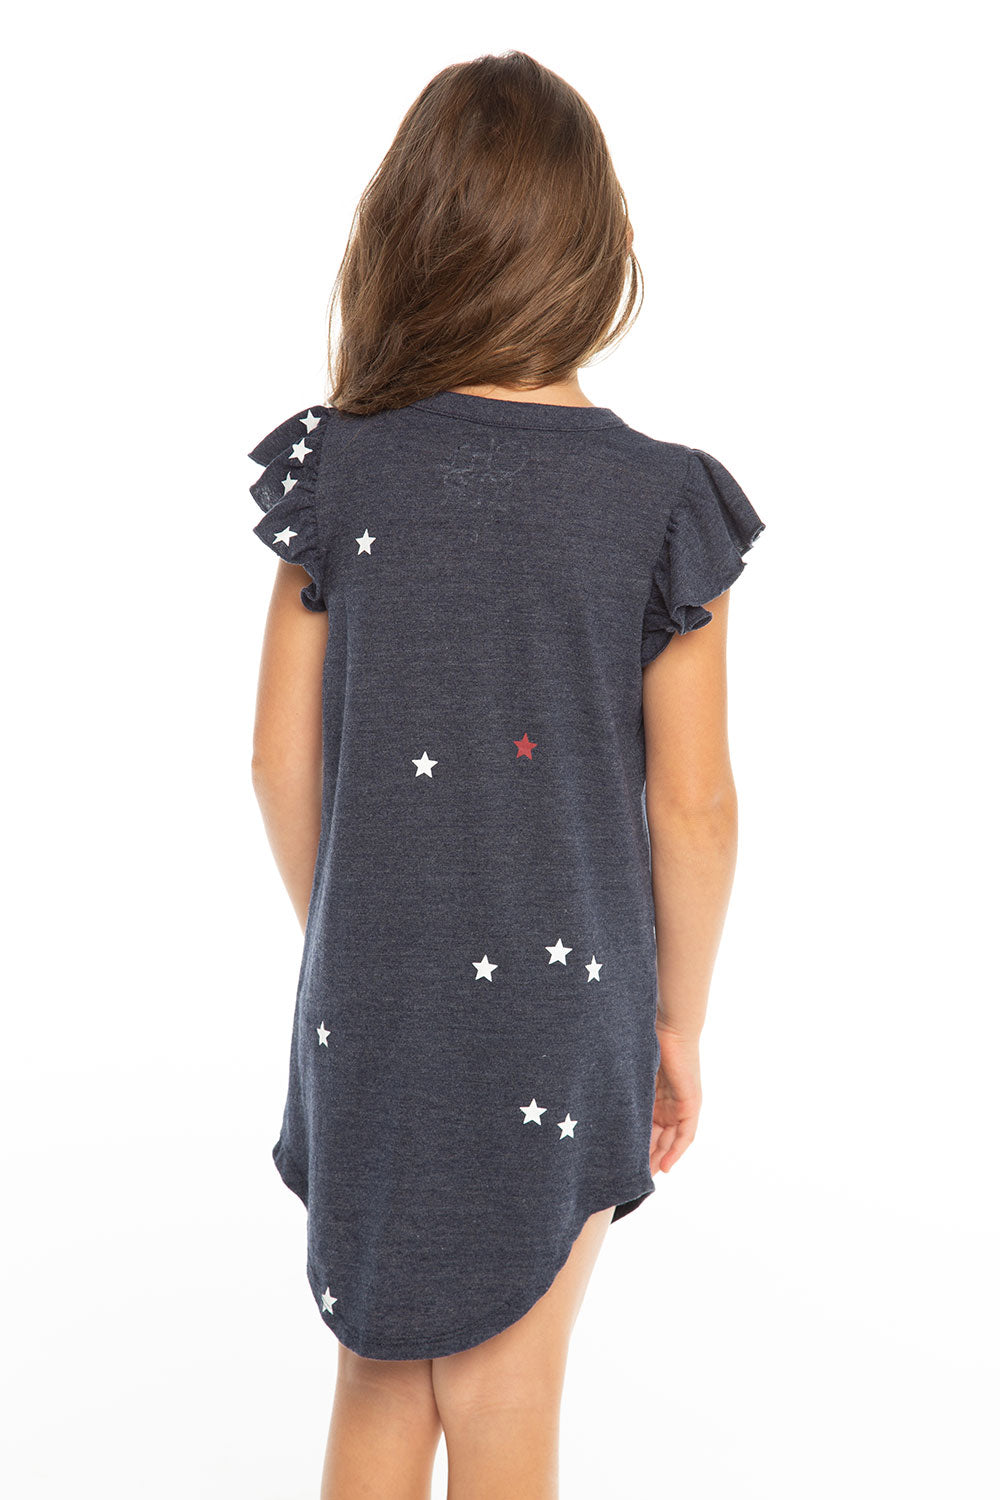 Americana Mini Stars Dress Girls chaserbrand4.myshopify.com